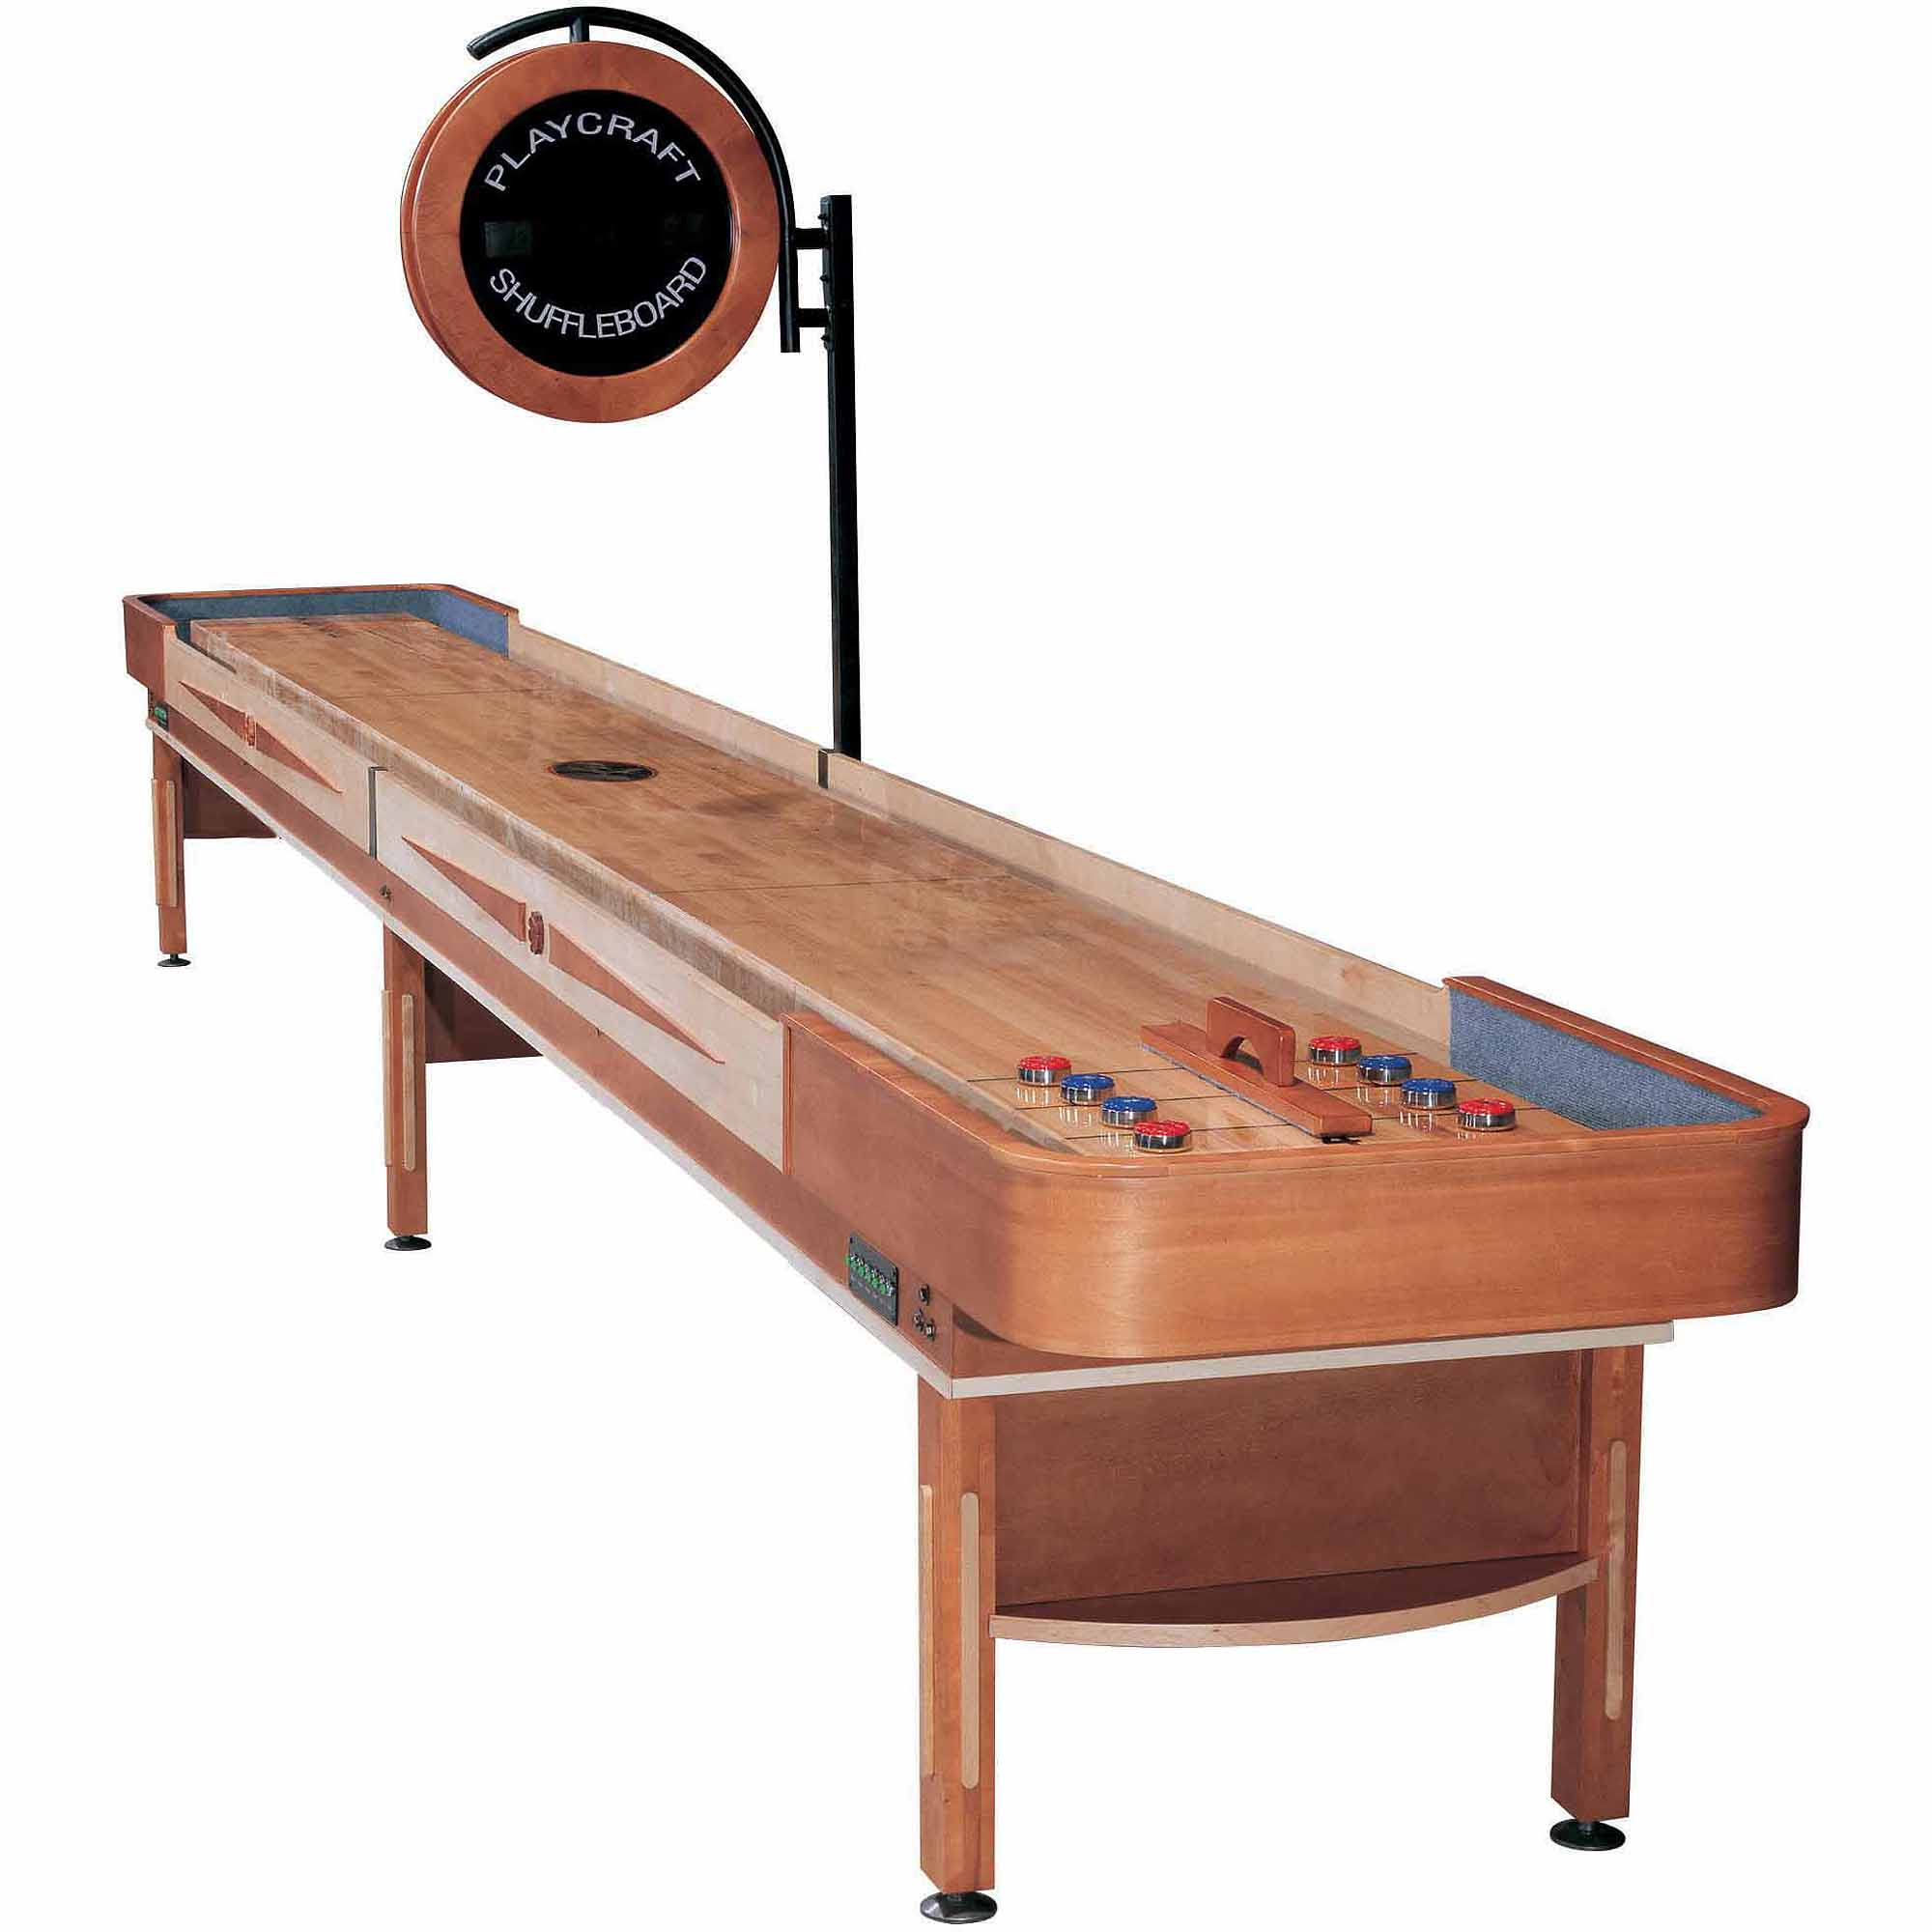 Playcraft Telluride Honey 14' Shuffleboard Table